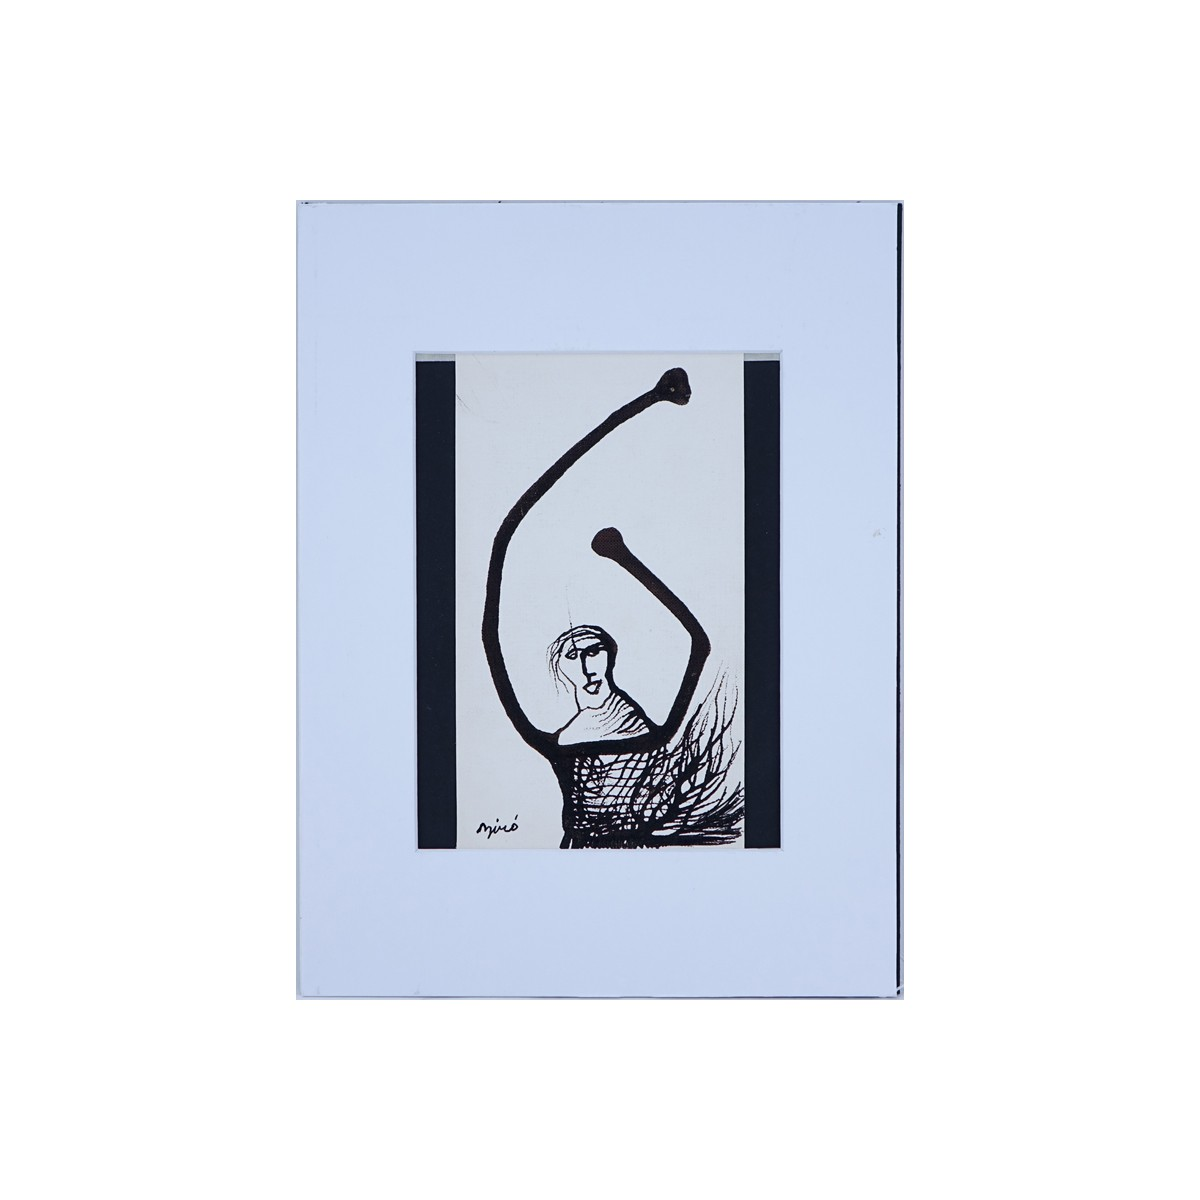 "Antal Biro, French (1907 - 1990) Ink on card ""Abstract Figure"". Signed lower left. Good condition."